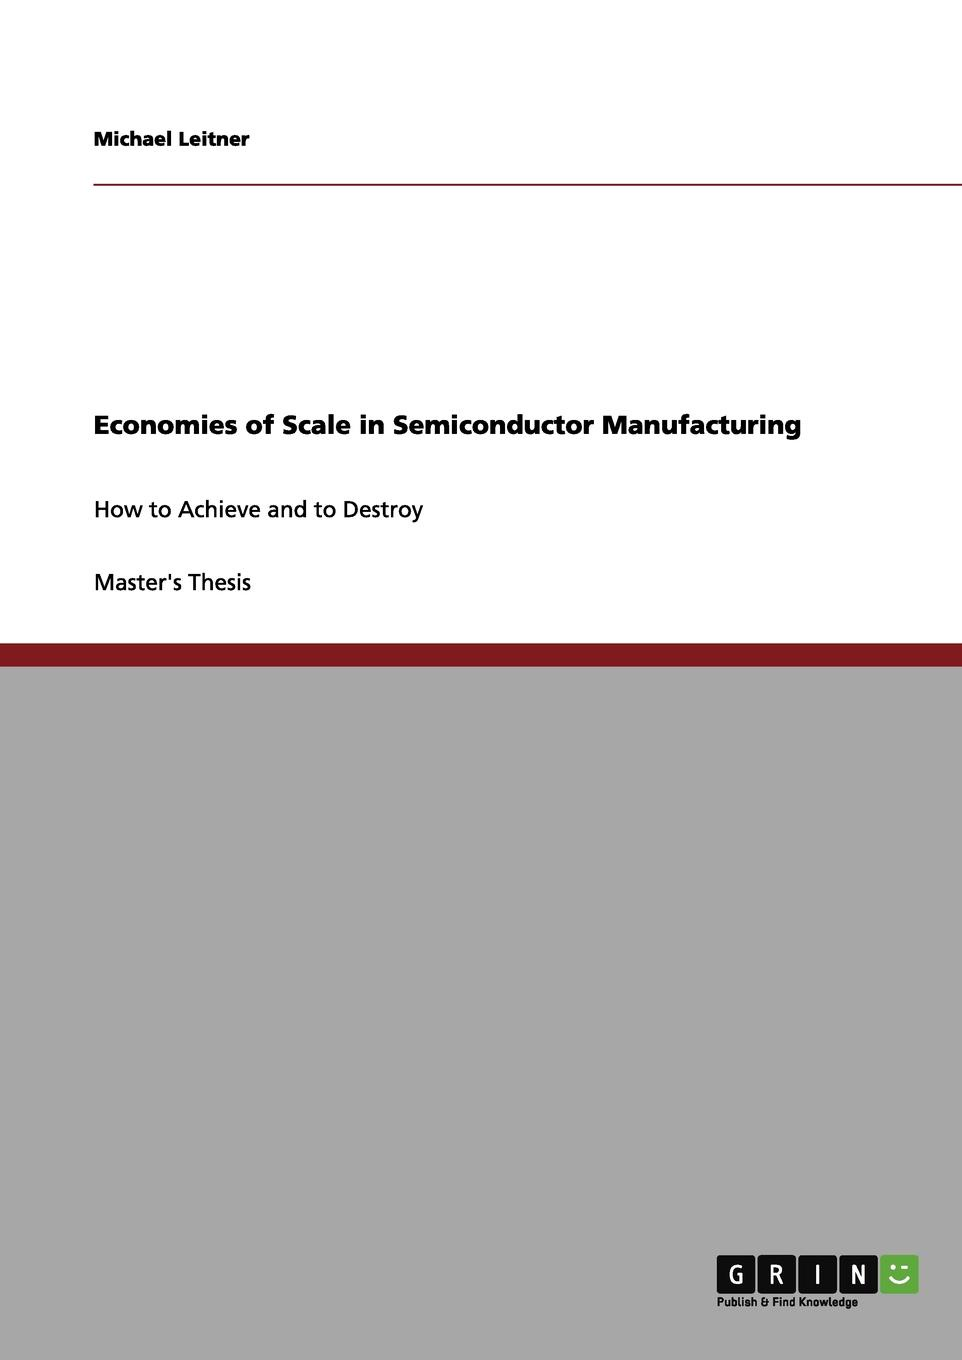 Michael Leitner Economies of Scale in Semiconductor Manufacturing economies of scale in ict